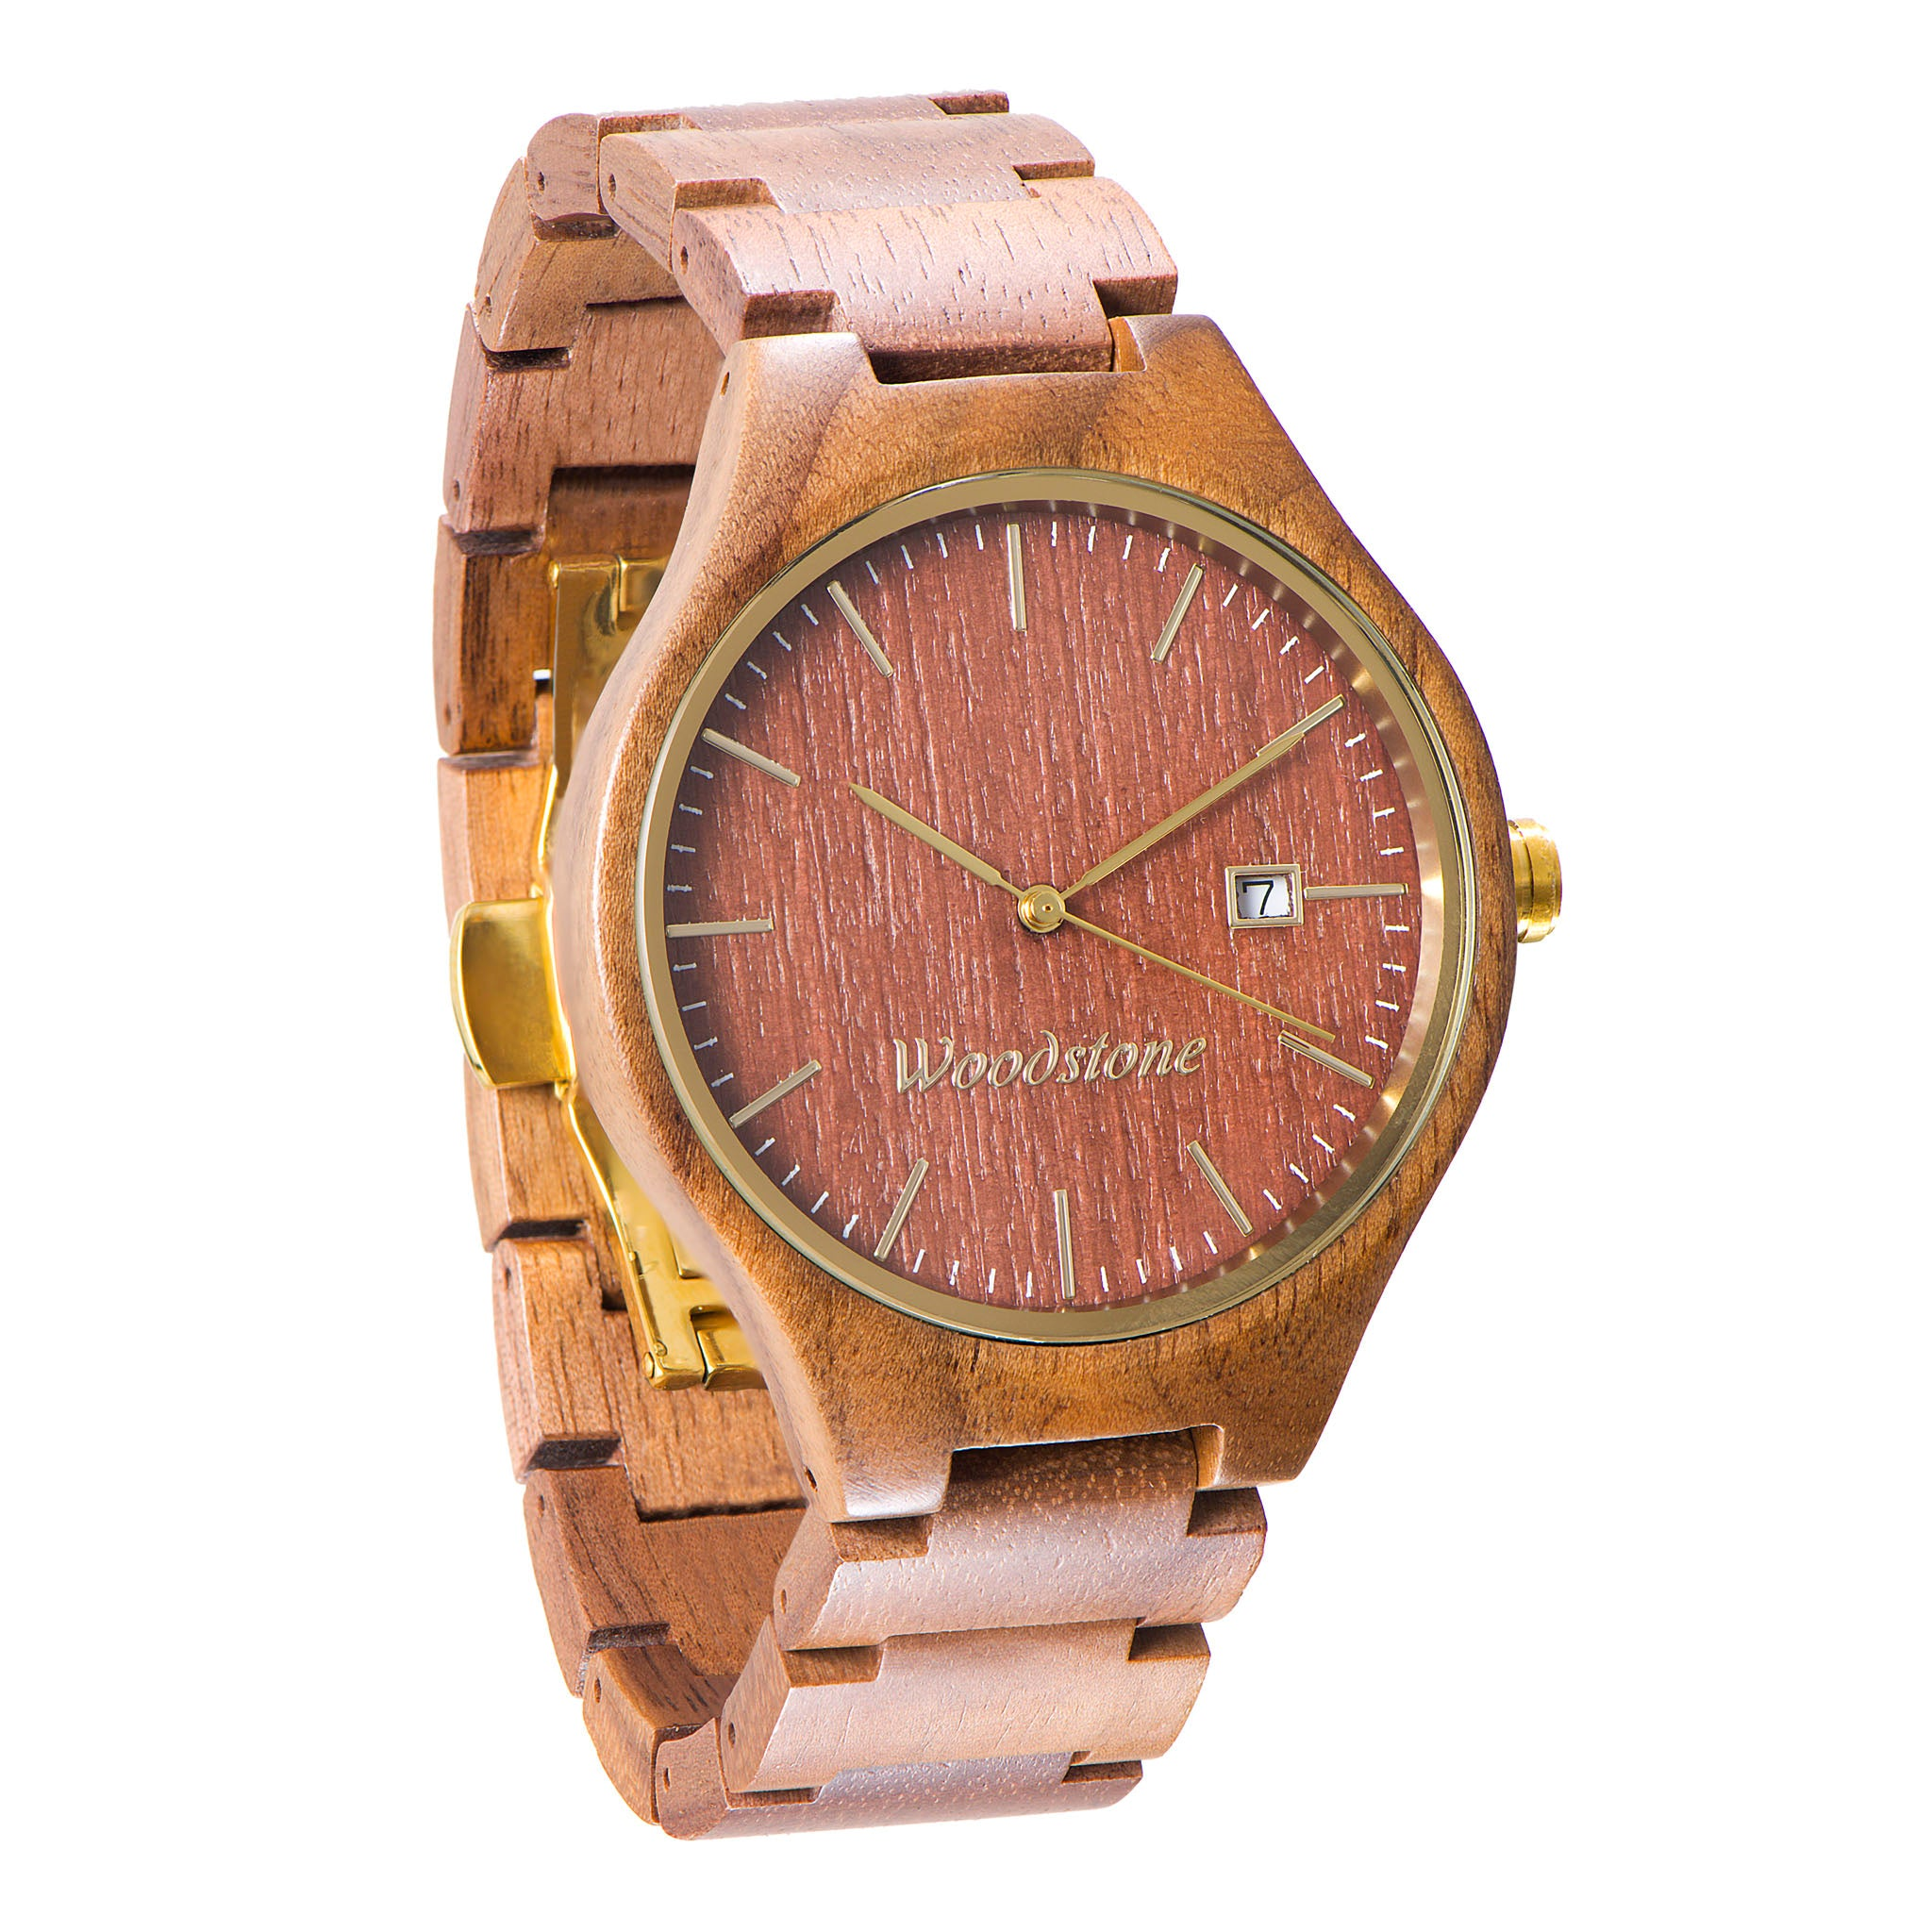 products amber product watches image synchrony wood grain